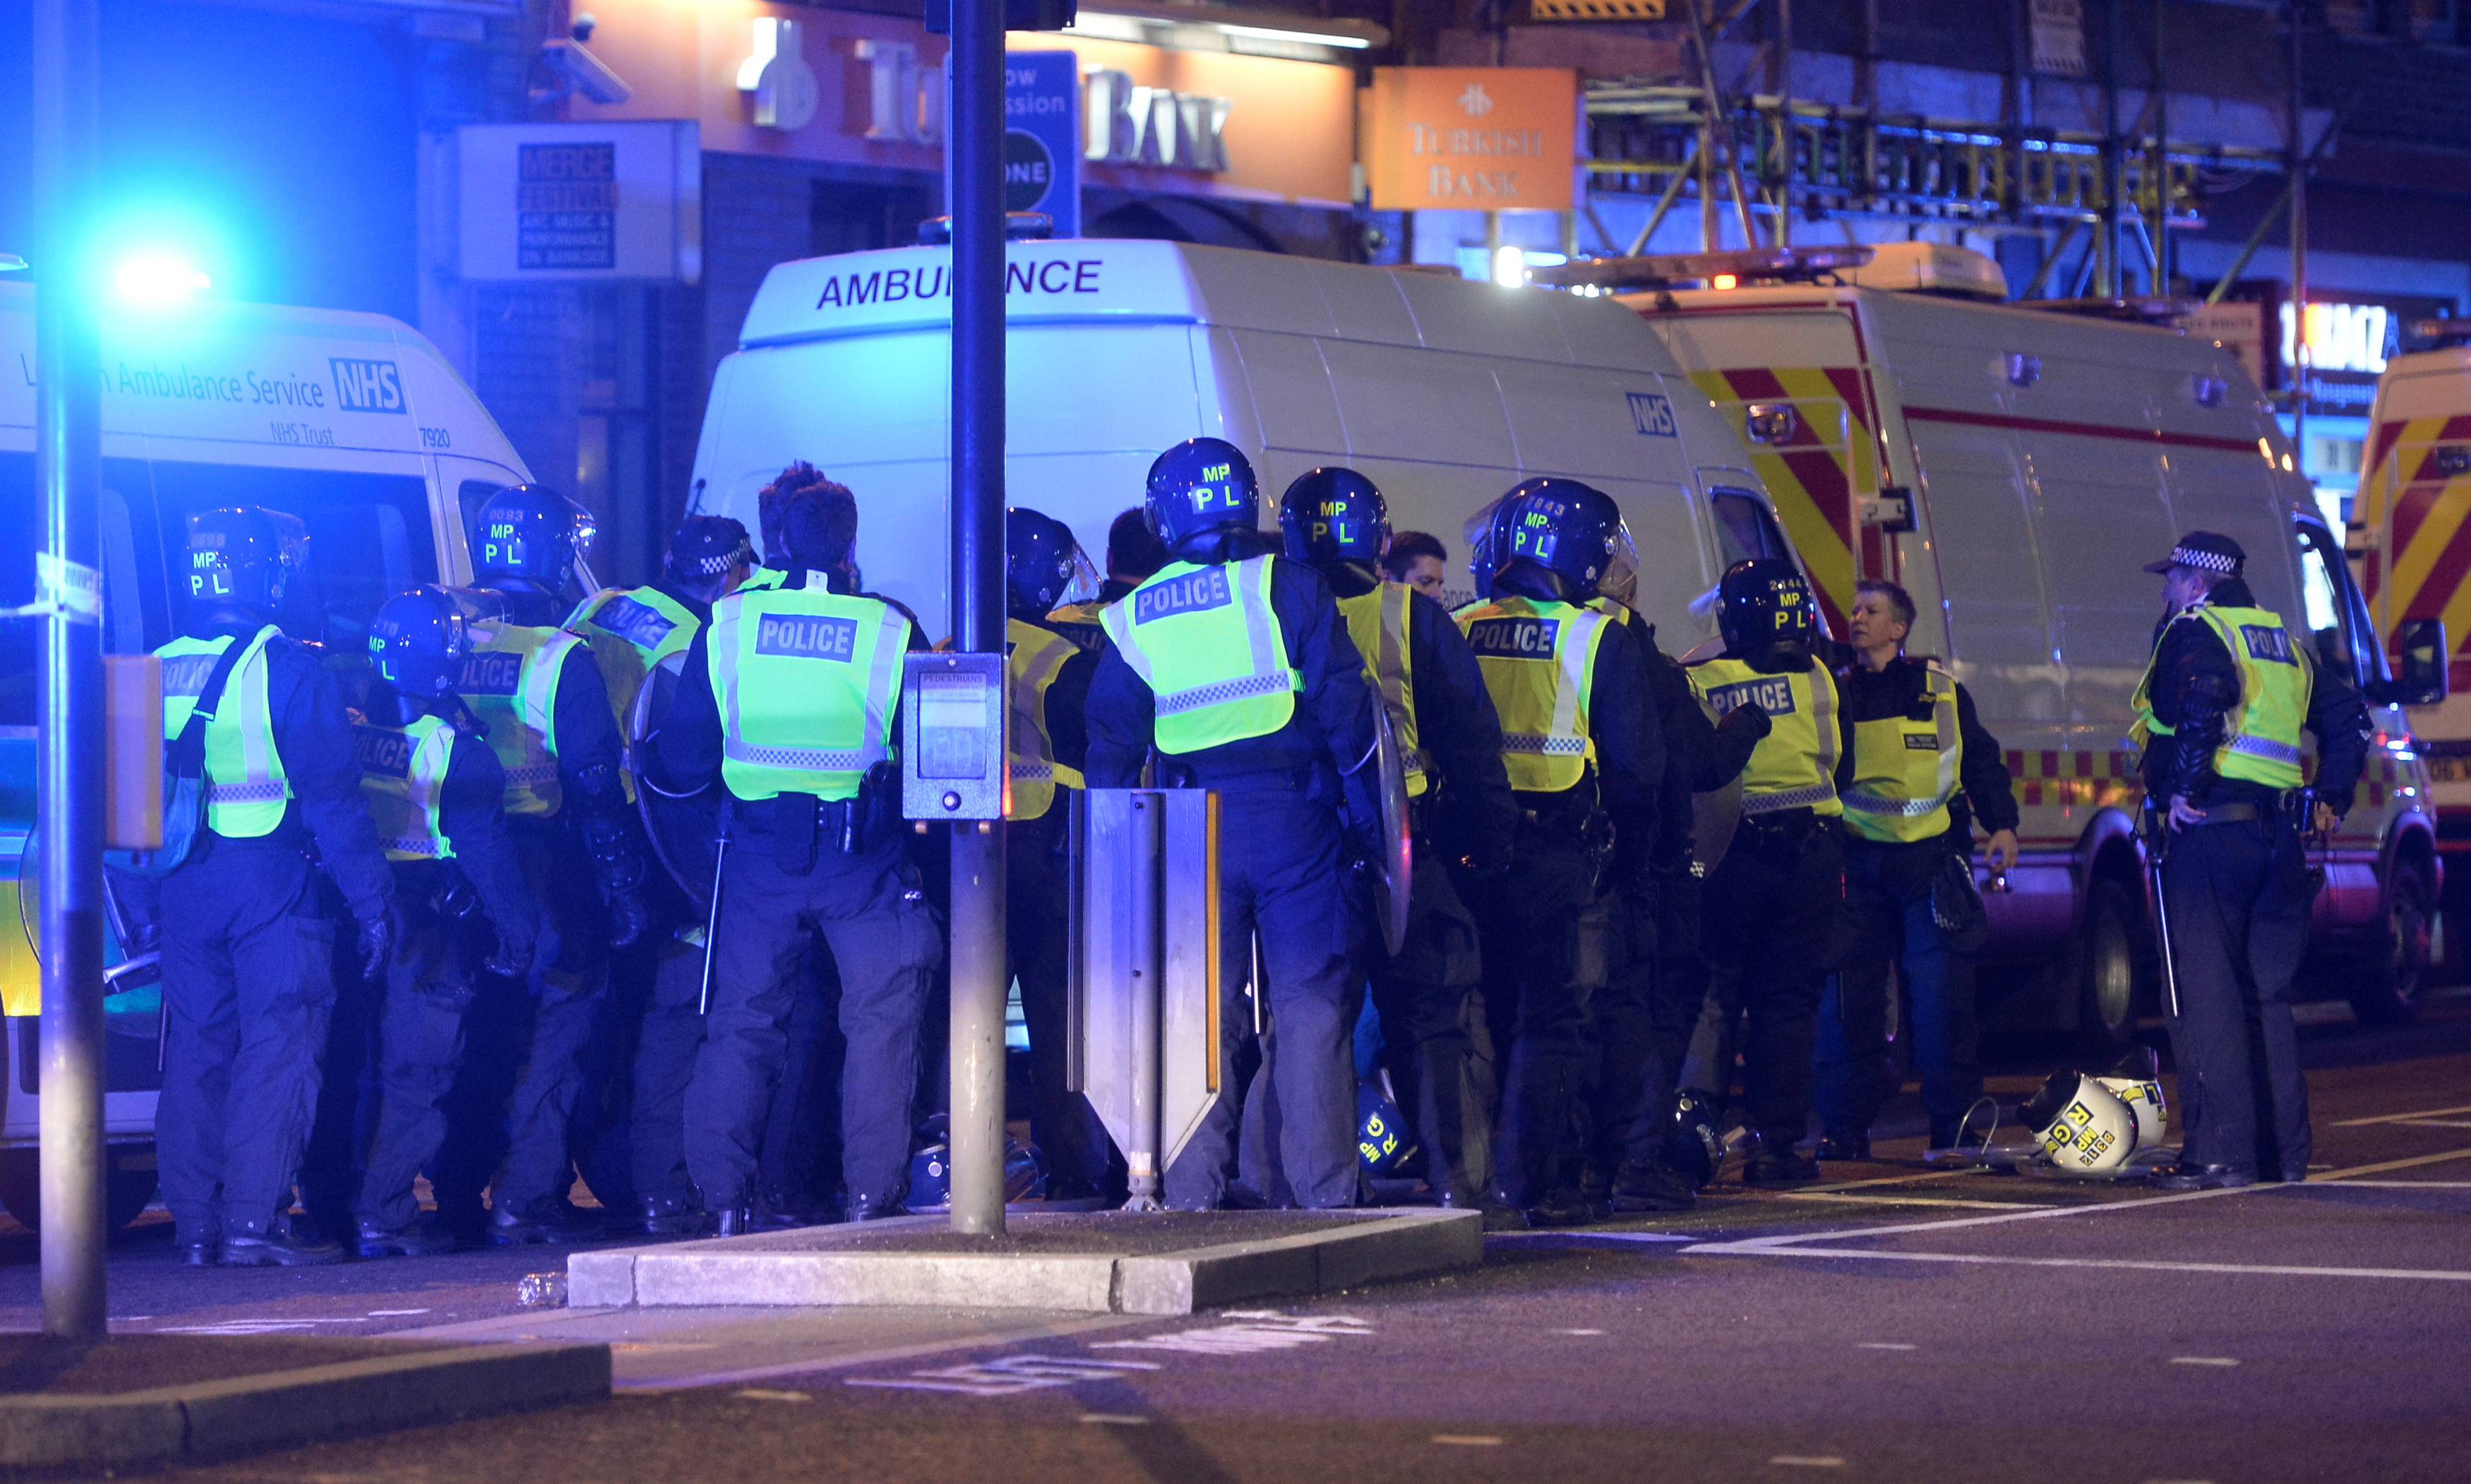 Terrorist offensive against London on eve of the election